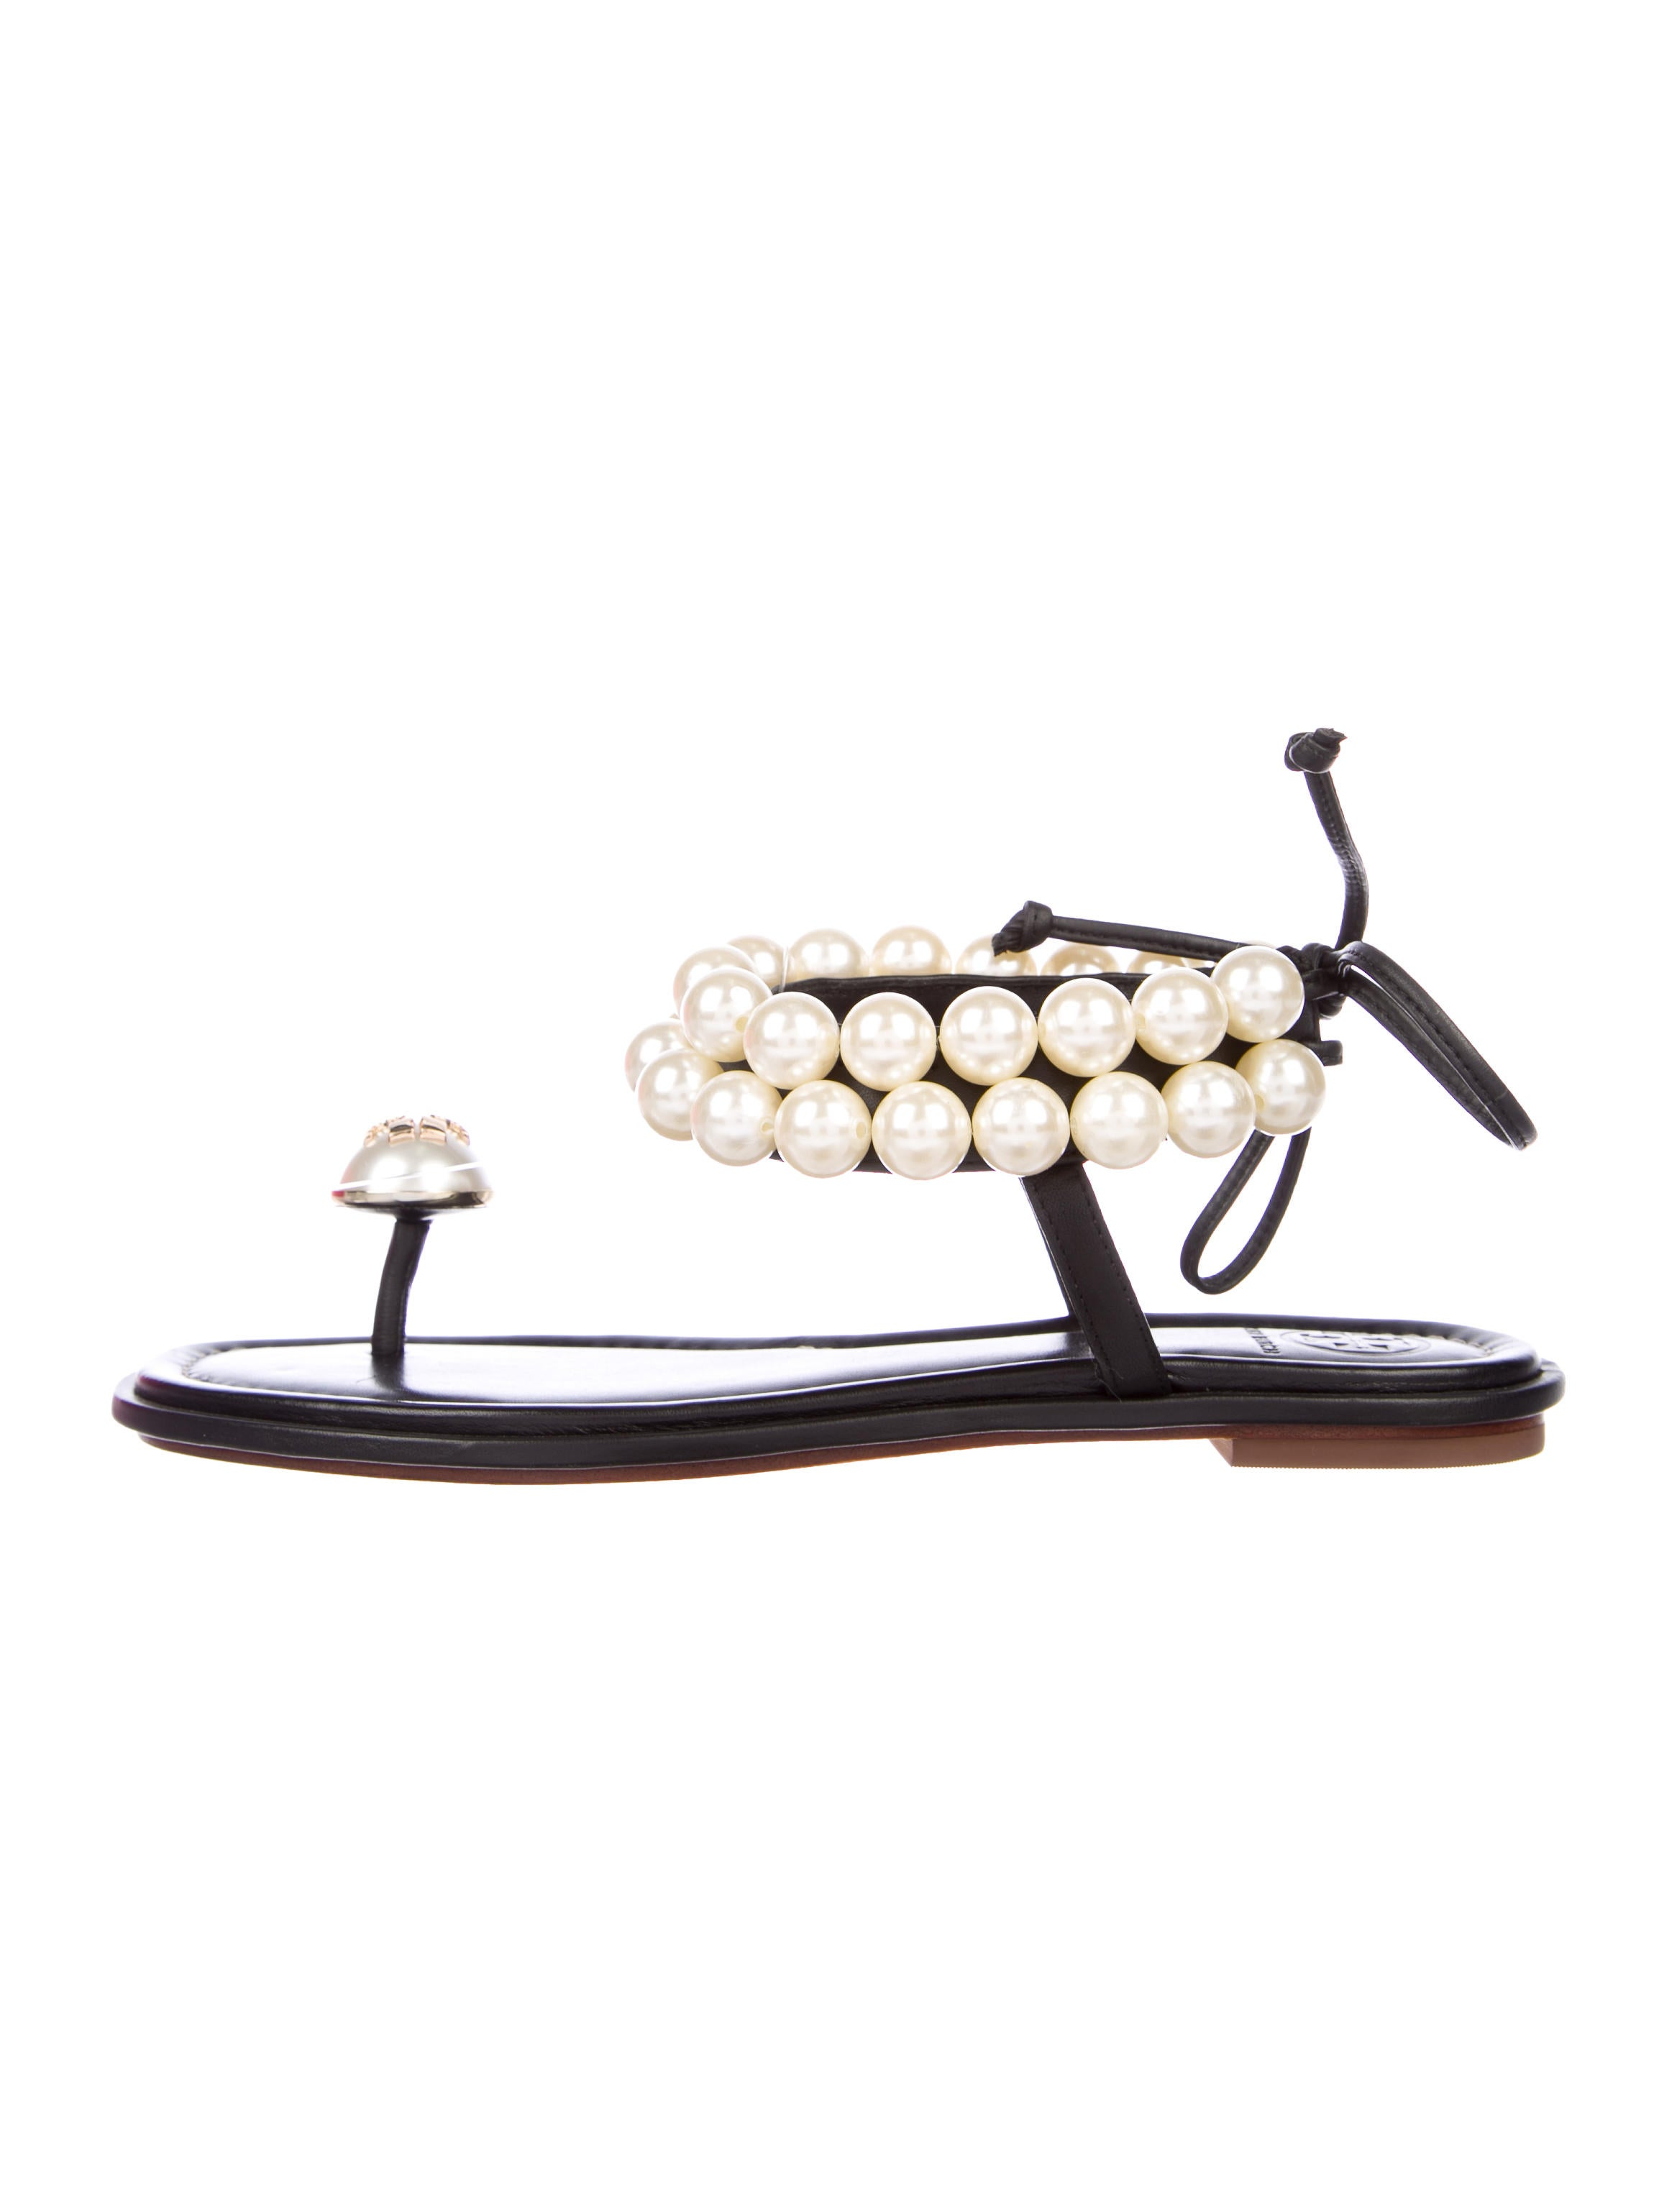 57c48d6d7a83 Tory Burch Melody Pearl Sandals w  Tags - Shoes - WTO124935